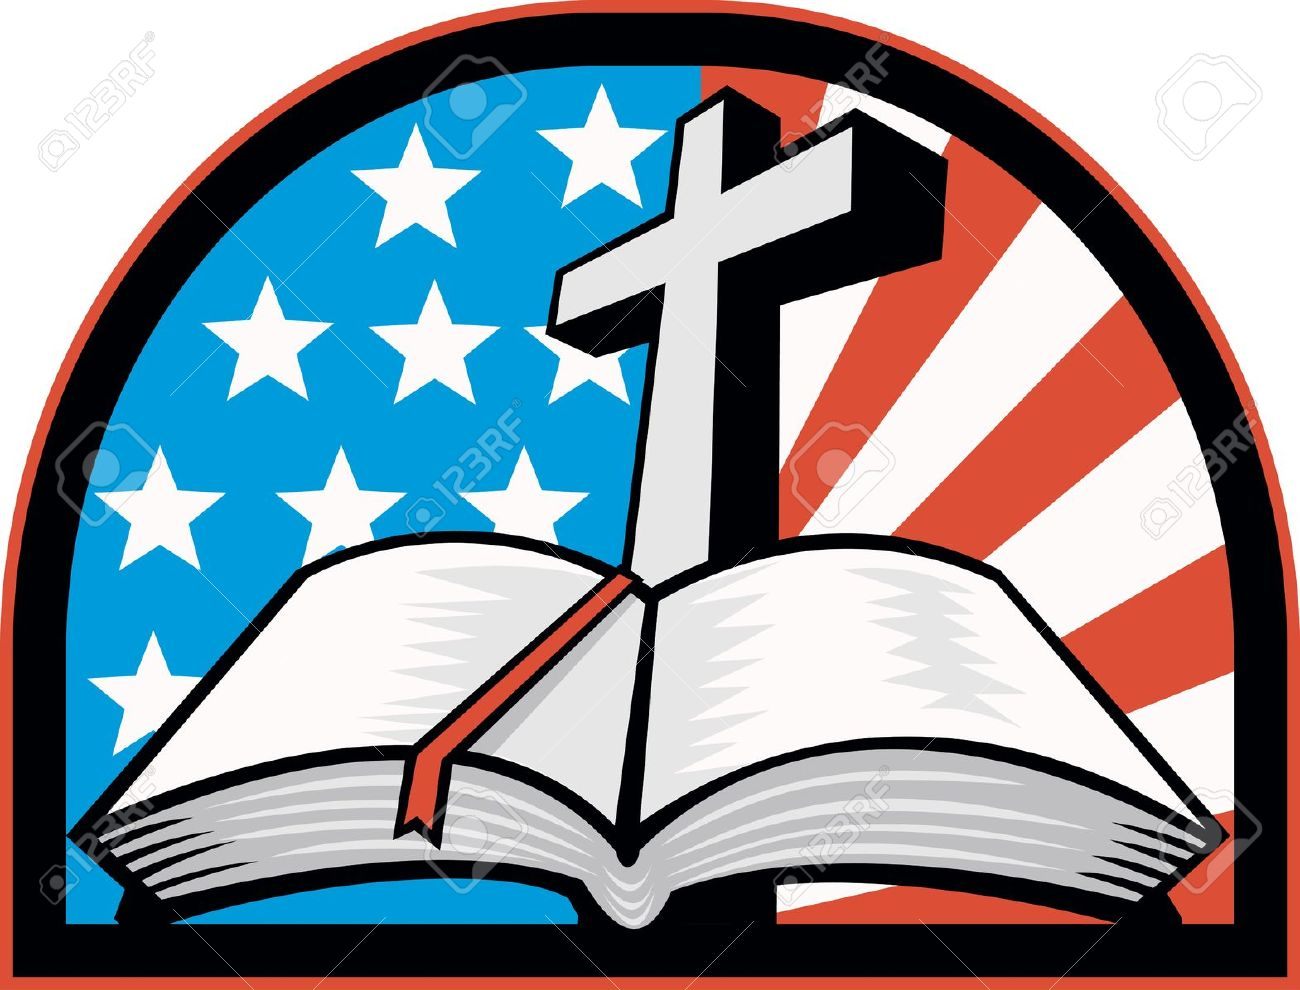 Cross and flag clipart.